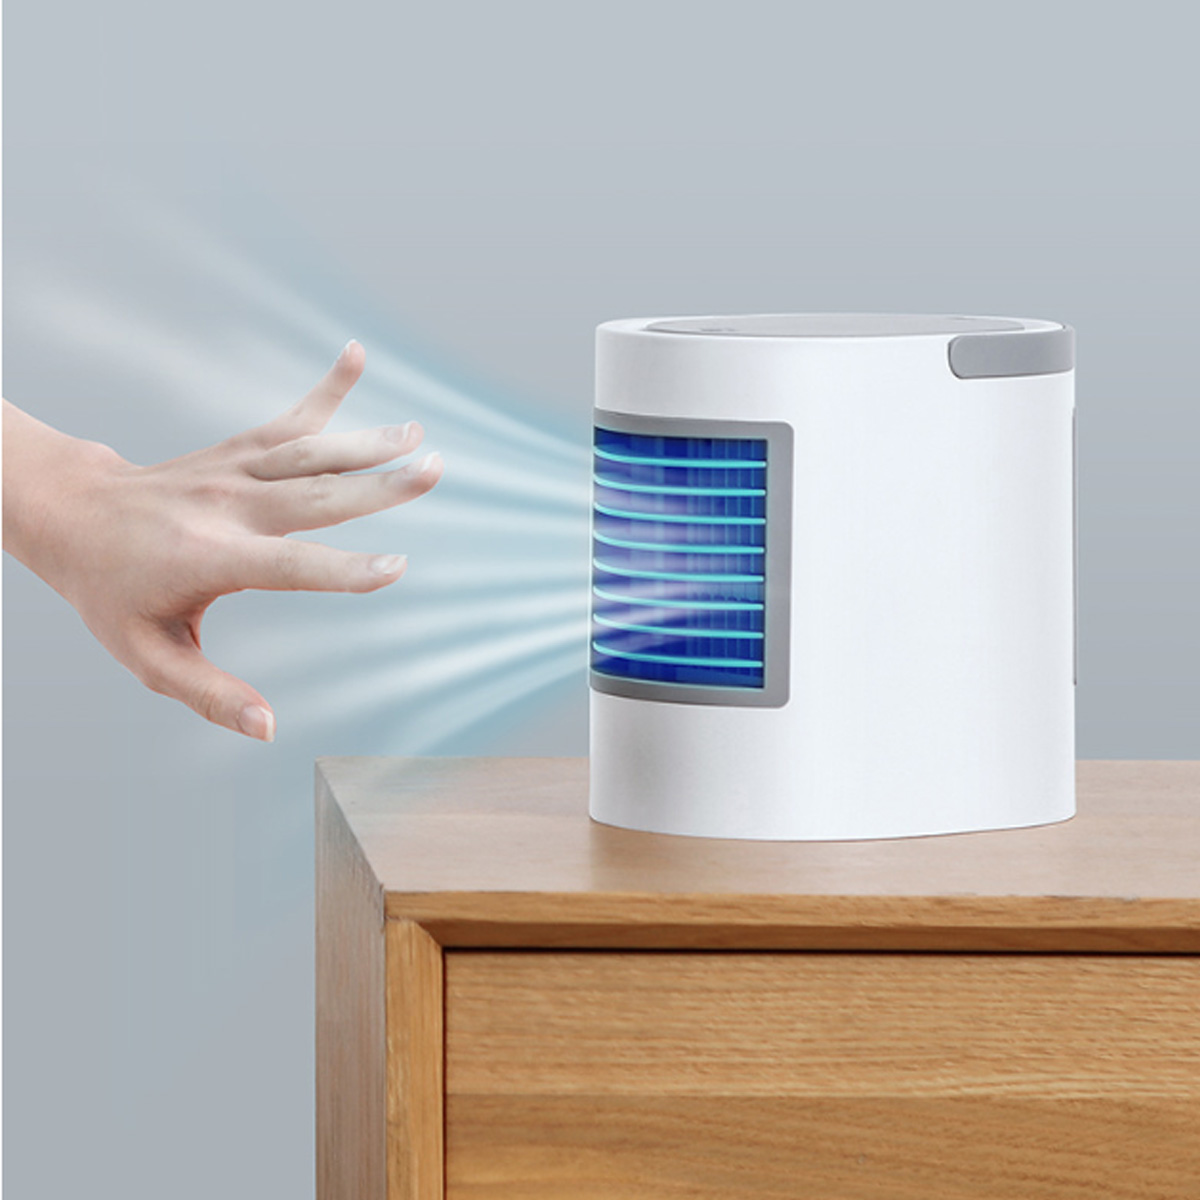 USB Mini Portable Air Conditioner Humidifier Purifier LED night Light Desktop Air Cooling Fan Air Cooler Fan for Office HomeUSB Mini Portable Air Conditioner Humidifier Purifier LED night Light Desktop Air Cooling Fan Air Cooler Fan for Office Home